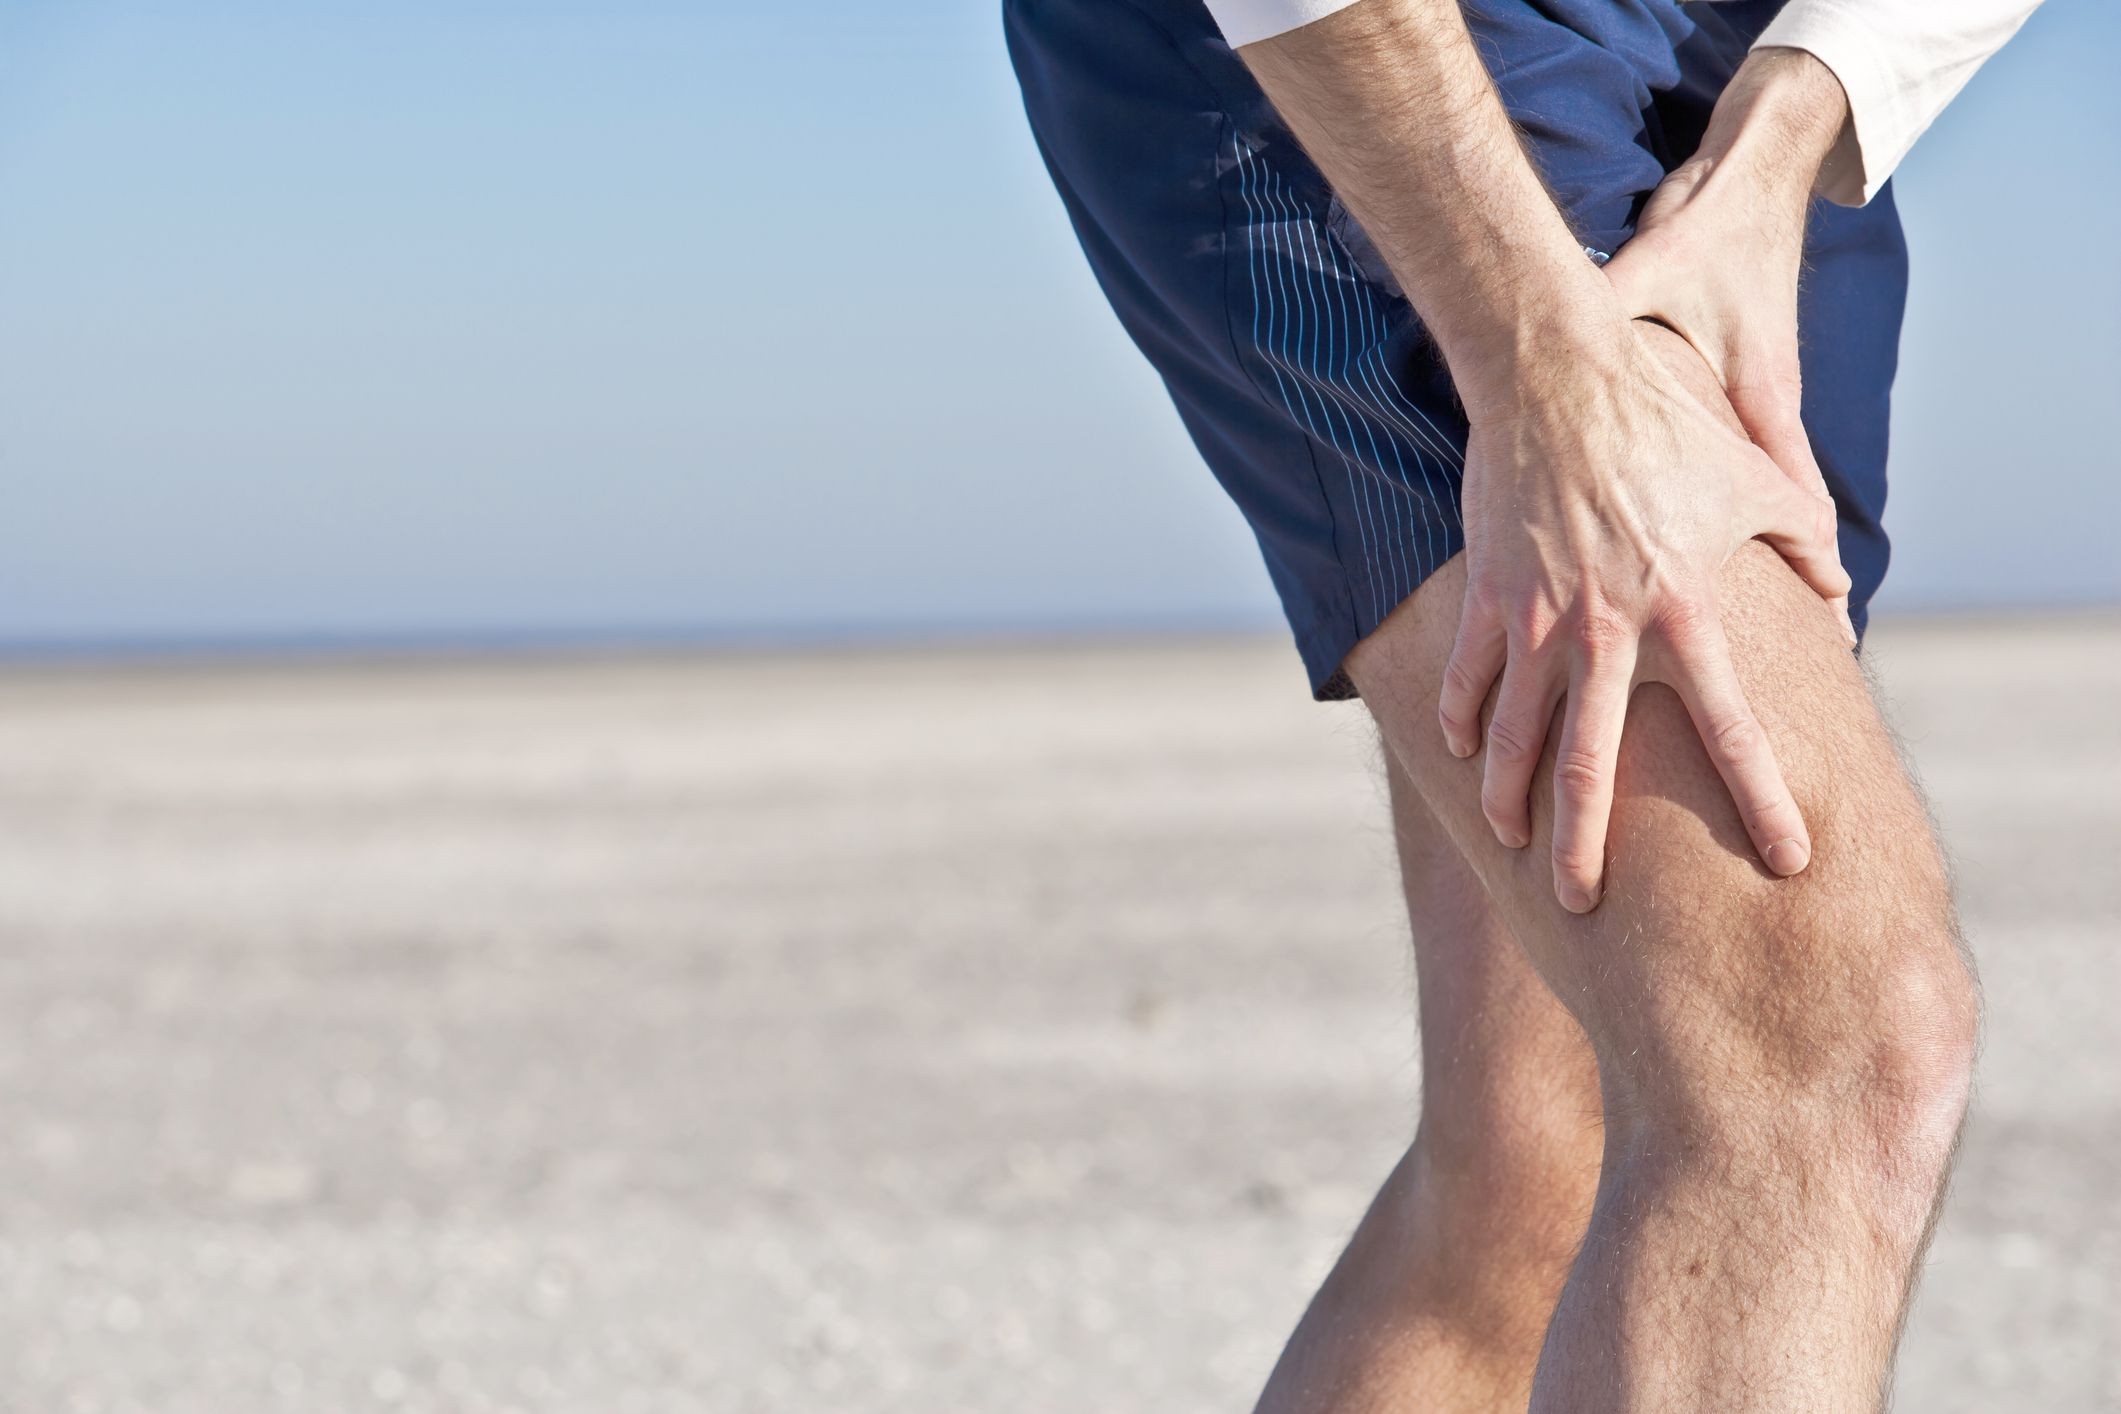 Thigh Pain  Causes  Treatment  And When To See A Doctor